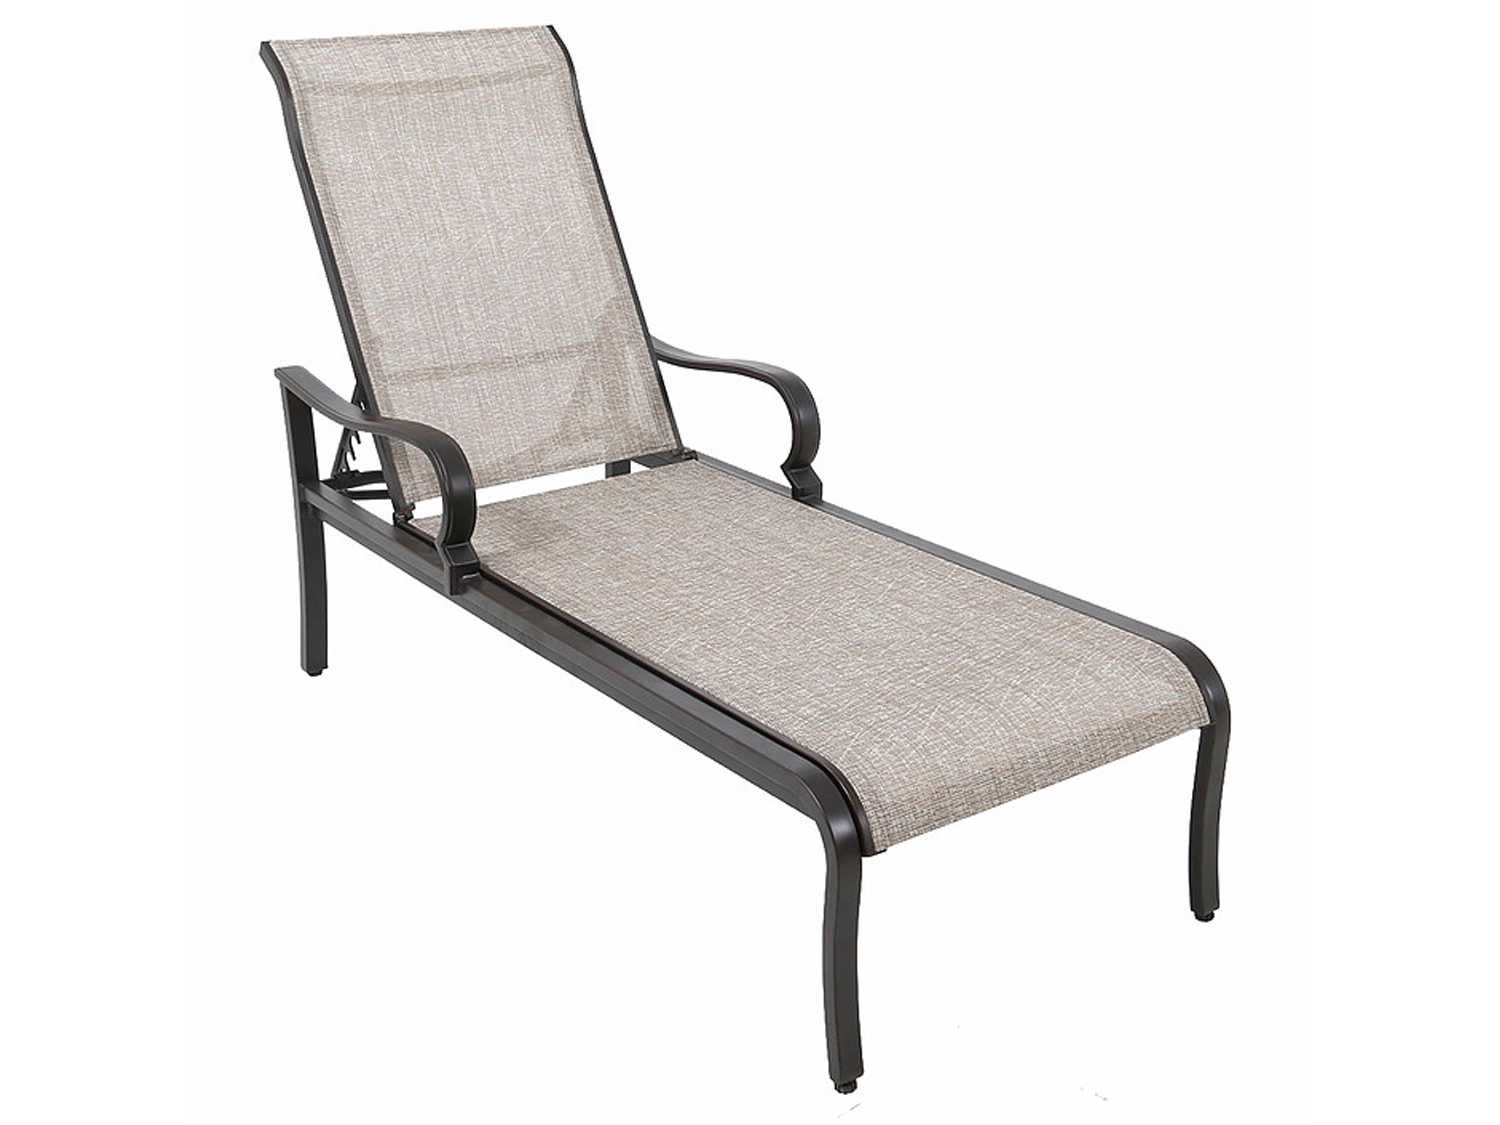 Sunvilla laurel sling aluminum chaise lounge a121100 for Chaise lounge aluminum